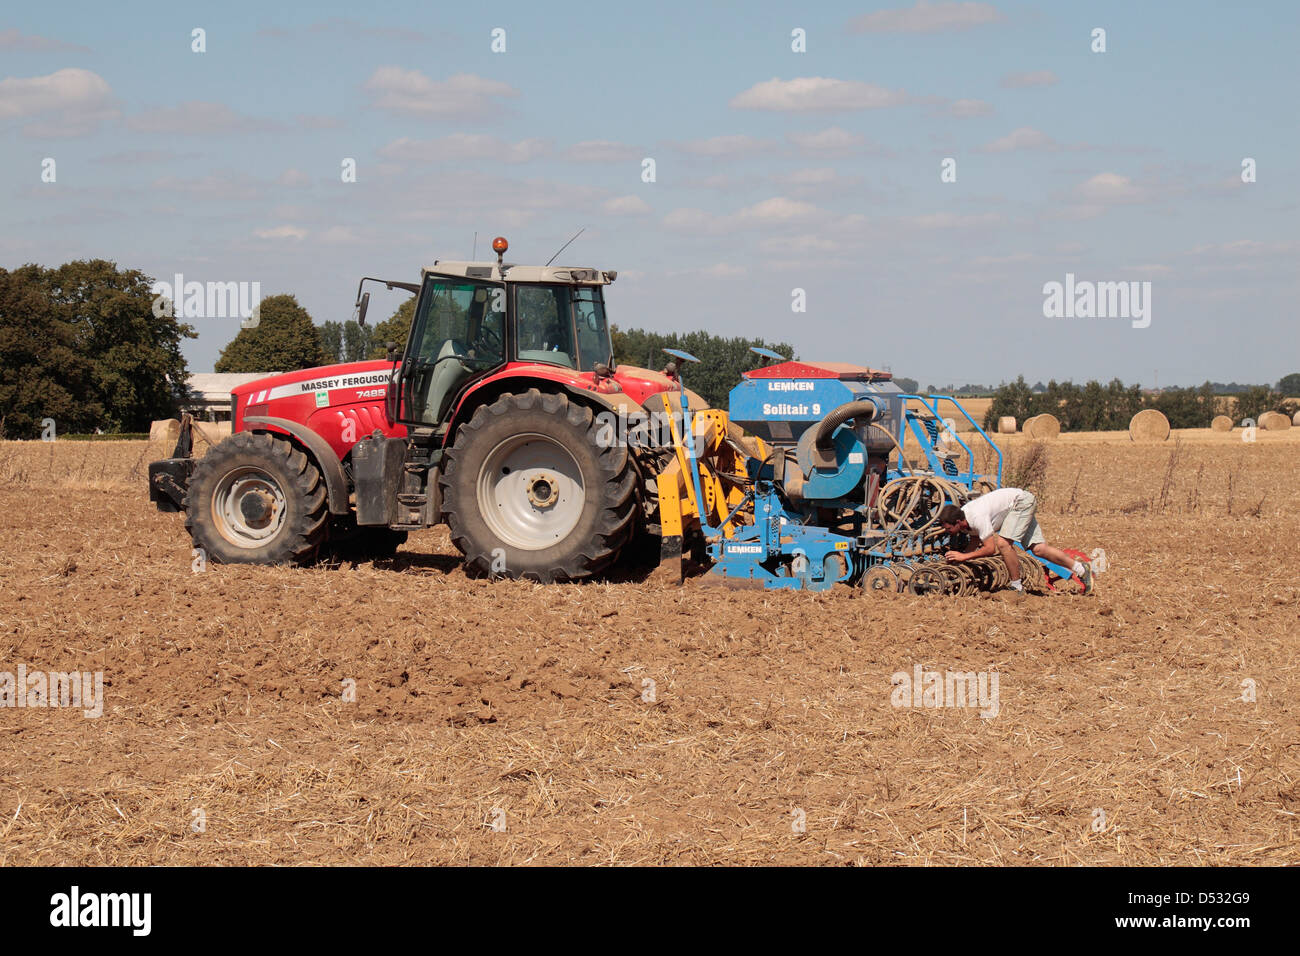 A Massey Ferguson 7485 tractor being prepared in a field in northern France with a Lemken Solitair 9 pneumatic seed - Stock Image